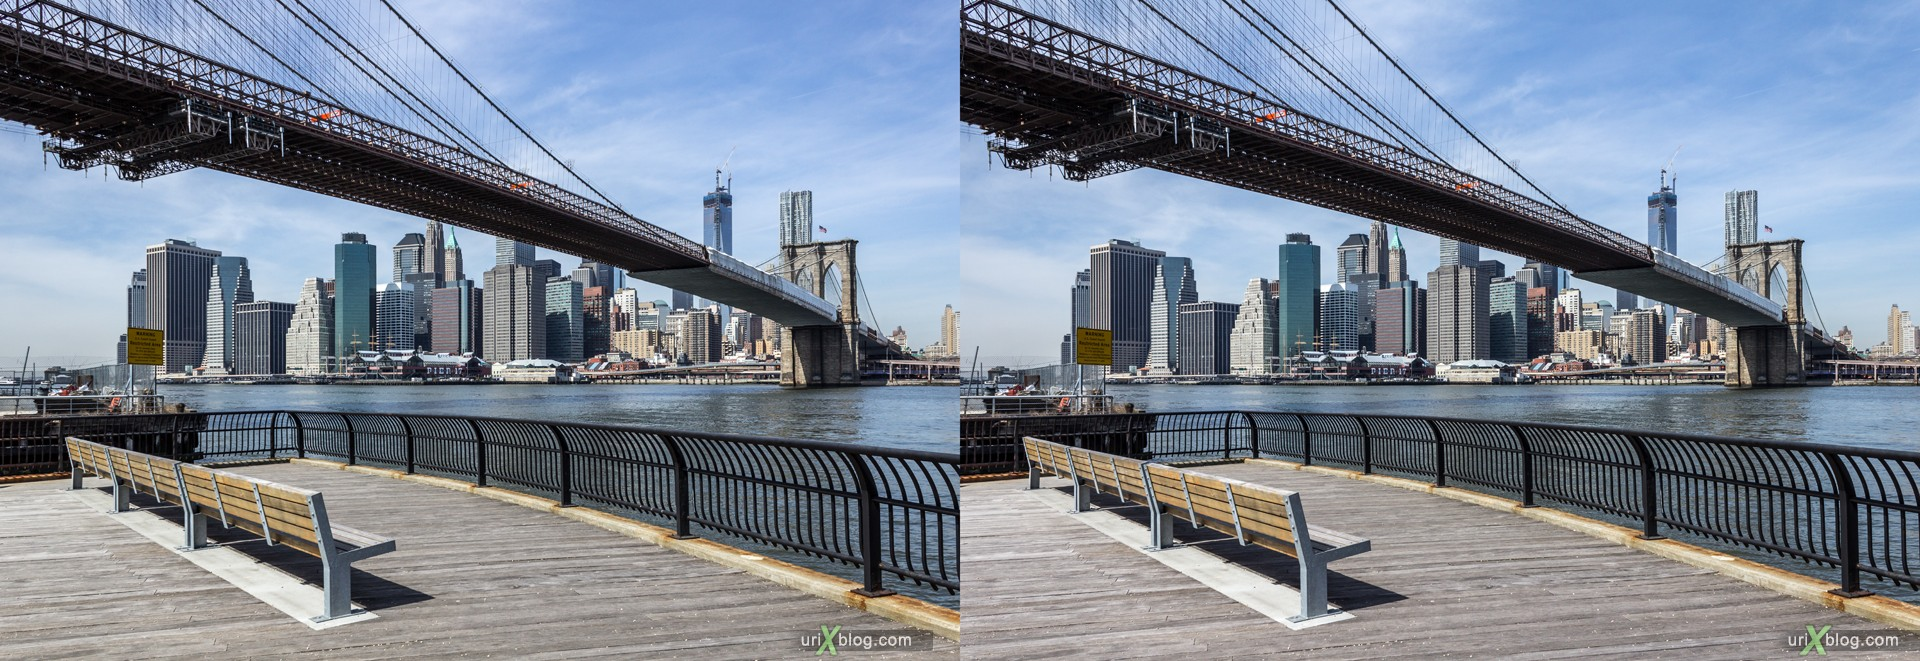 2013, Brooklyn Bridge park, NYC, New York City, USA, 3D, stereo pair, cross-eyed, crossview, cross view stereo pair, stereoscopic